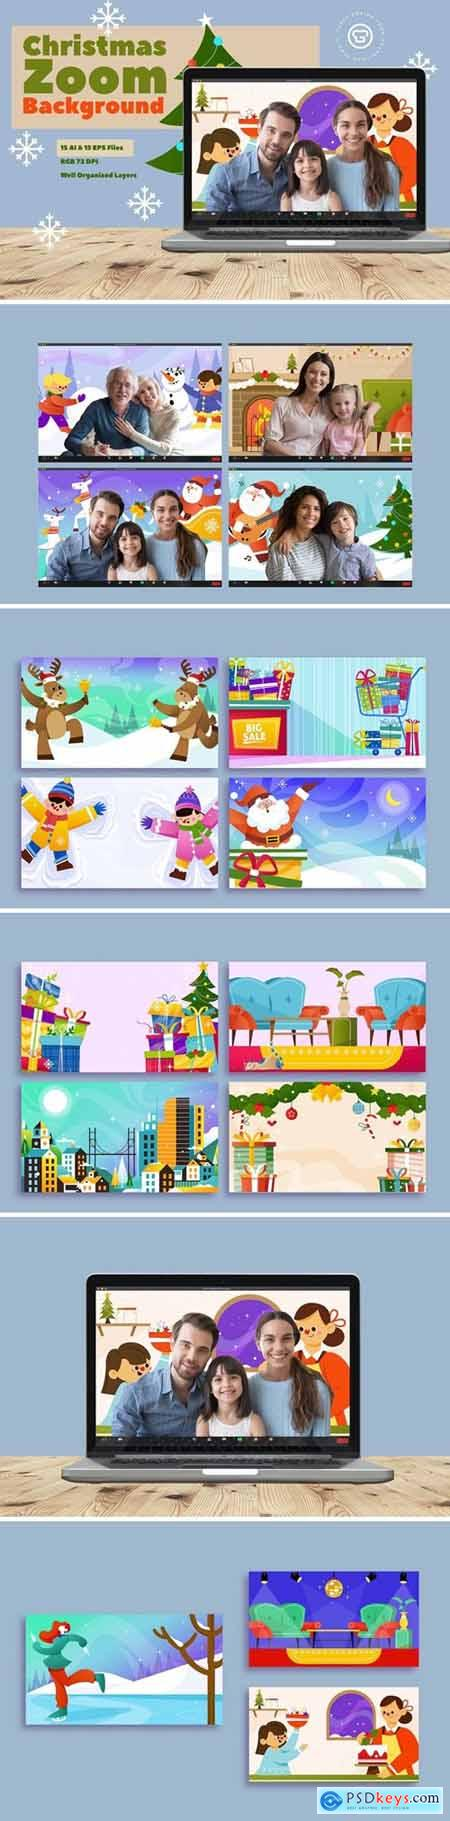 Christmas Zoom Background Template